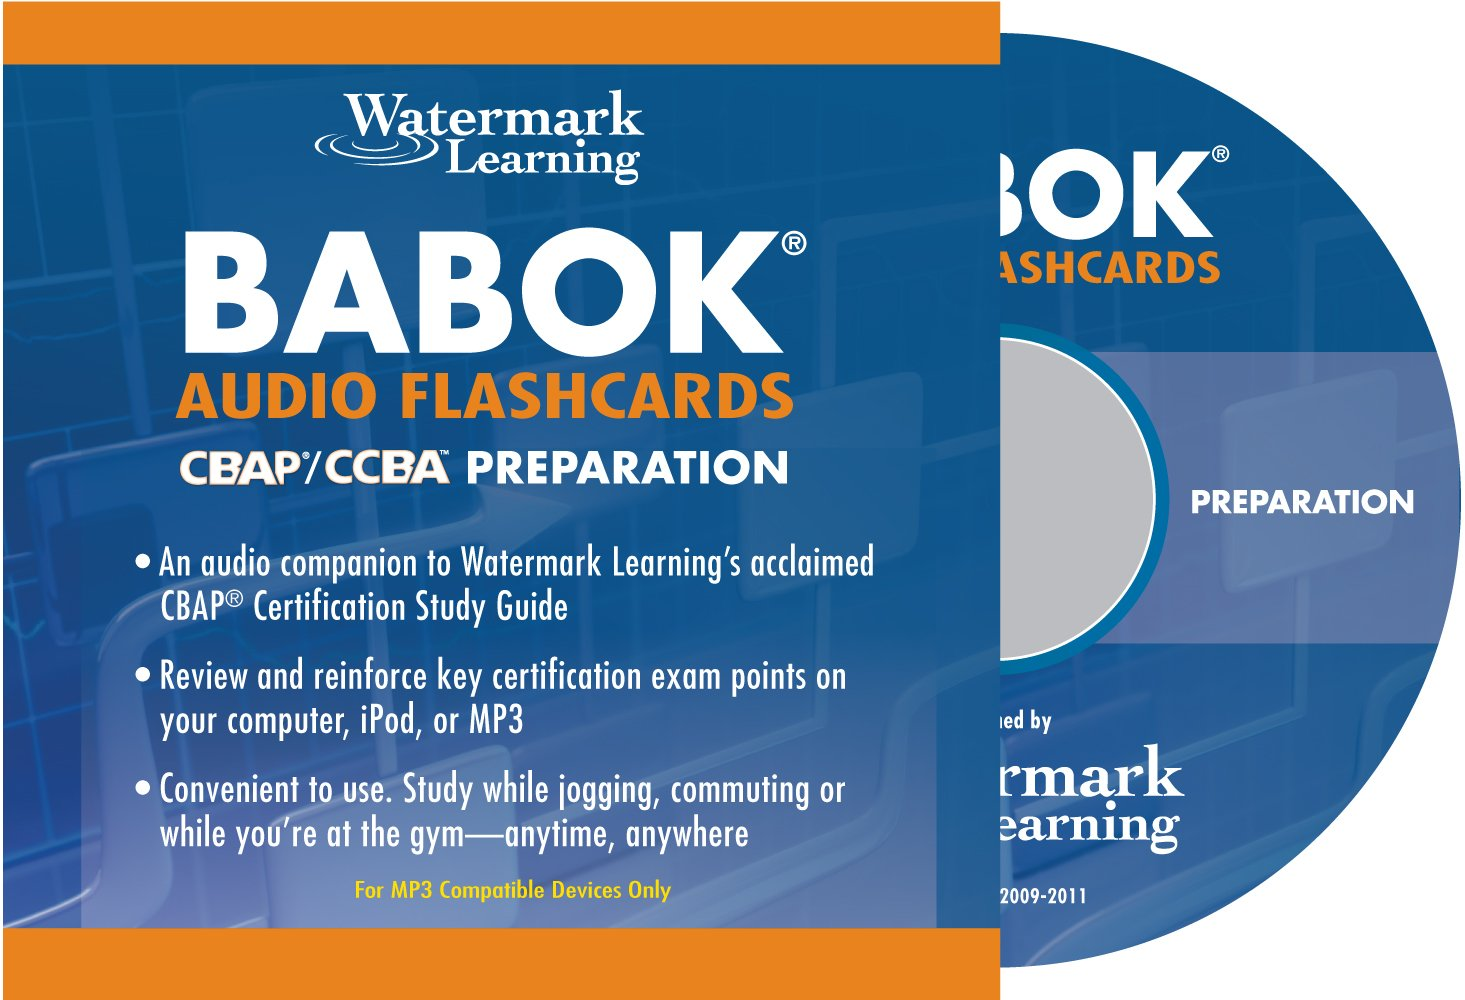 Babok Audio Flashcards Cbapccba Preparation Richard Larson